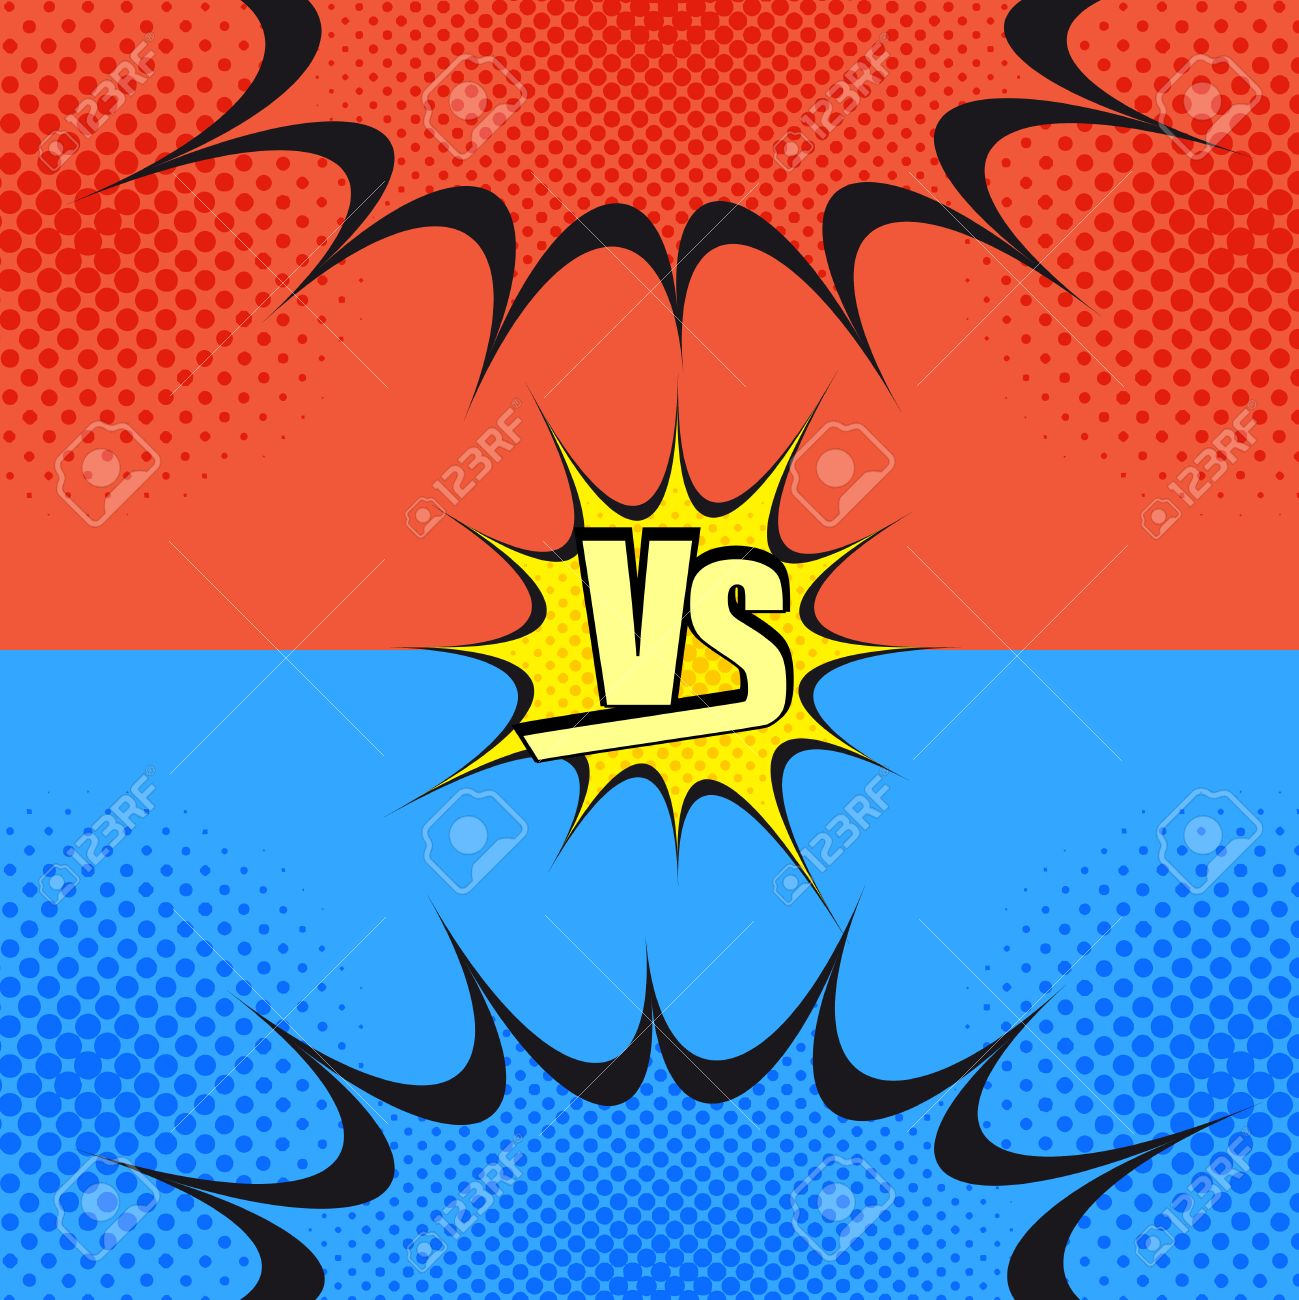 versus wording comic fight template cartoon background with